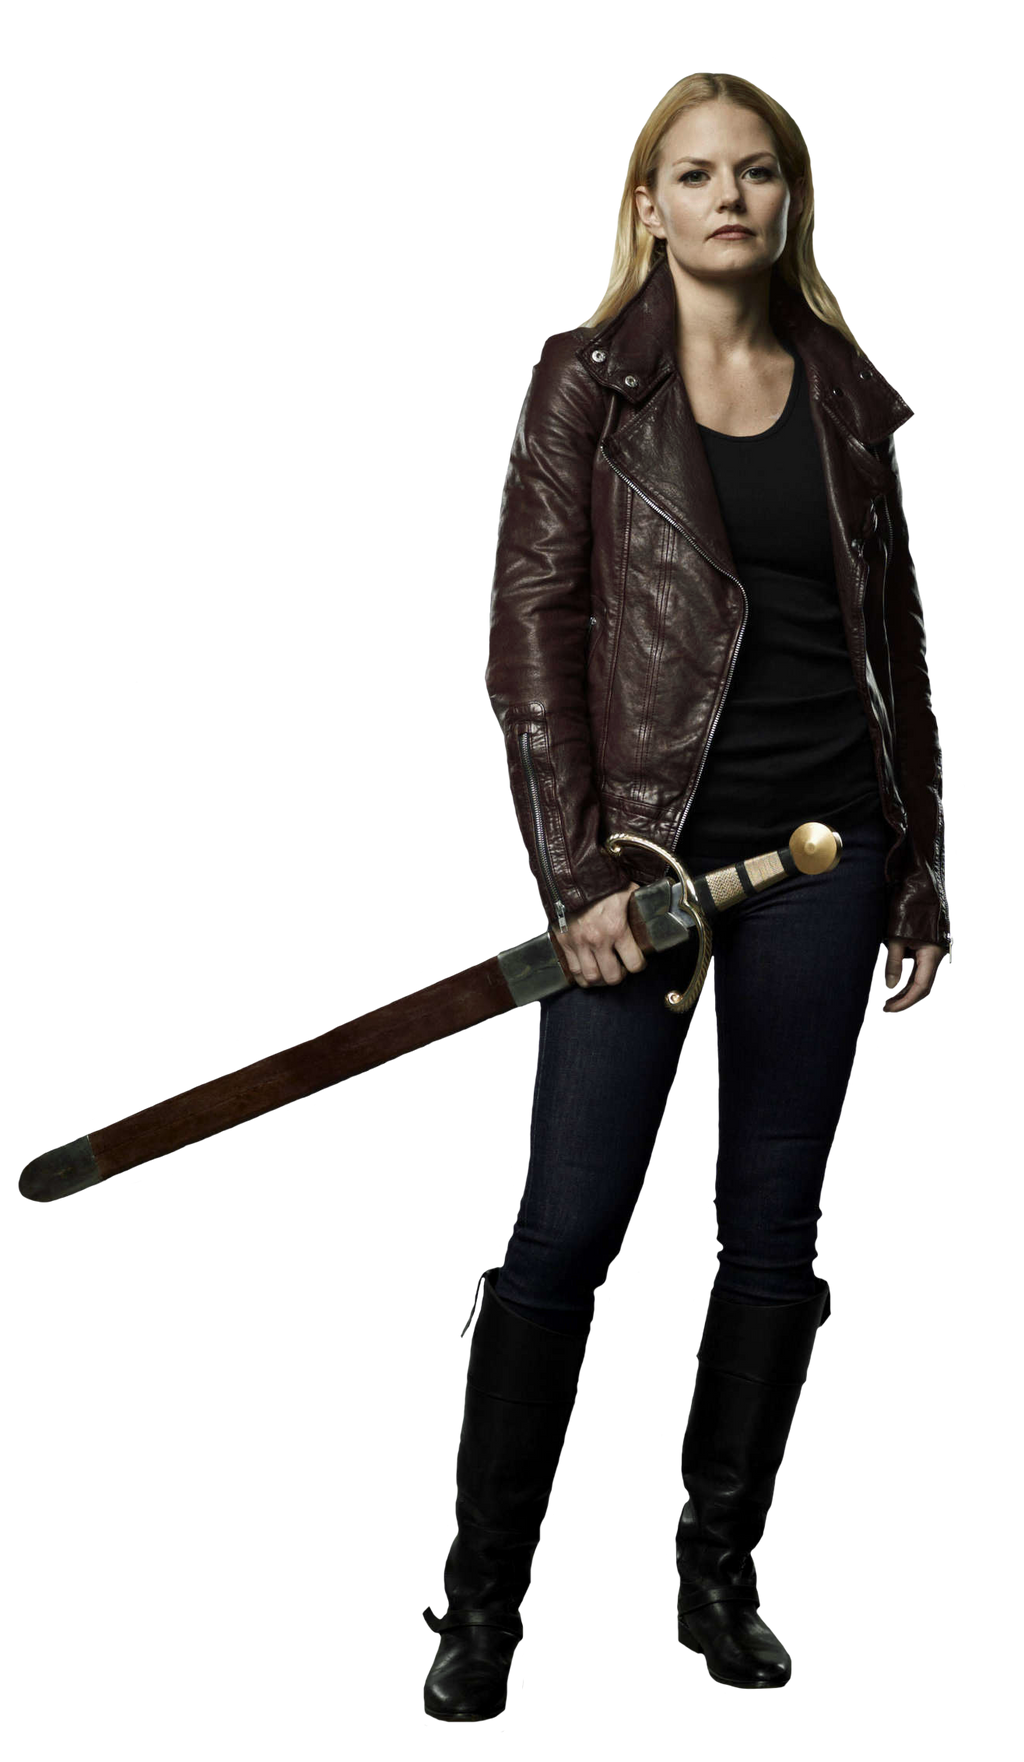 Emma Swan Once Upon A Time Png 1 By Isobel Theroux On Deviantart